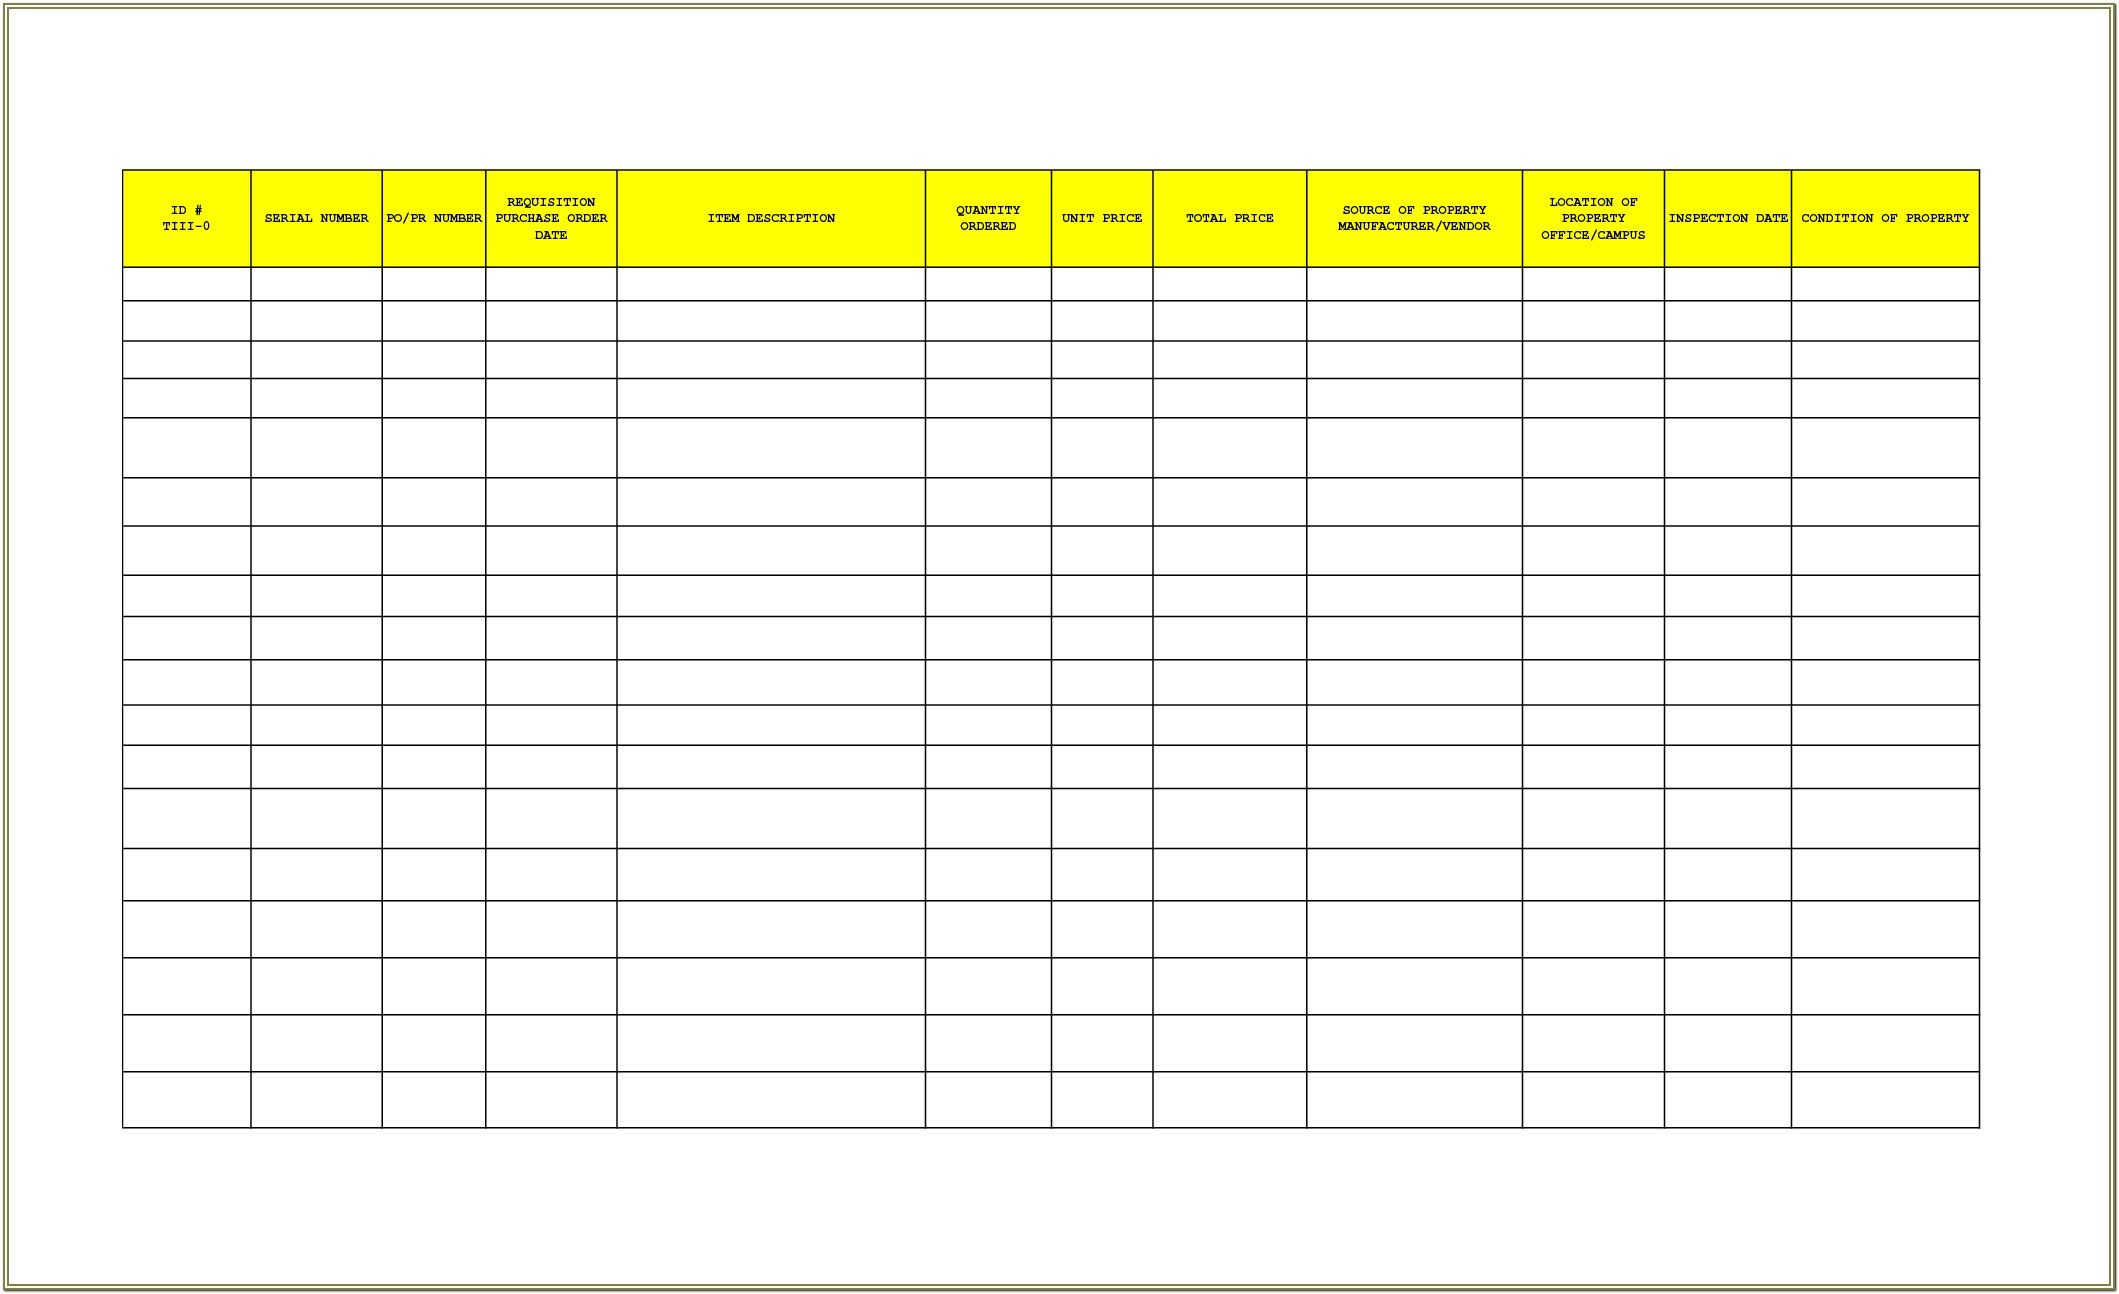 Inventory Form For Office Supplies